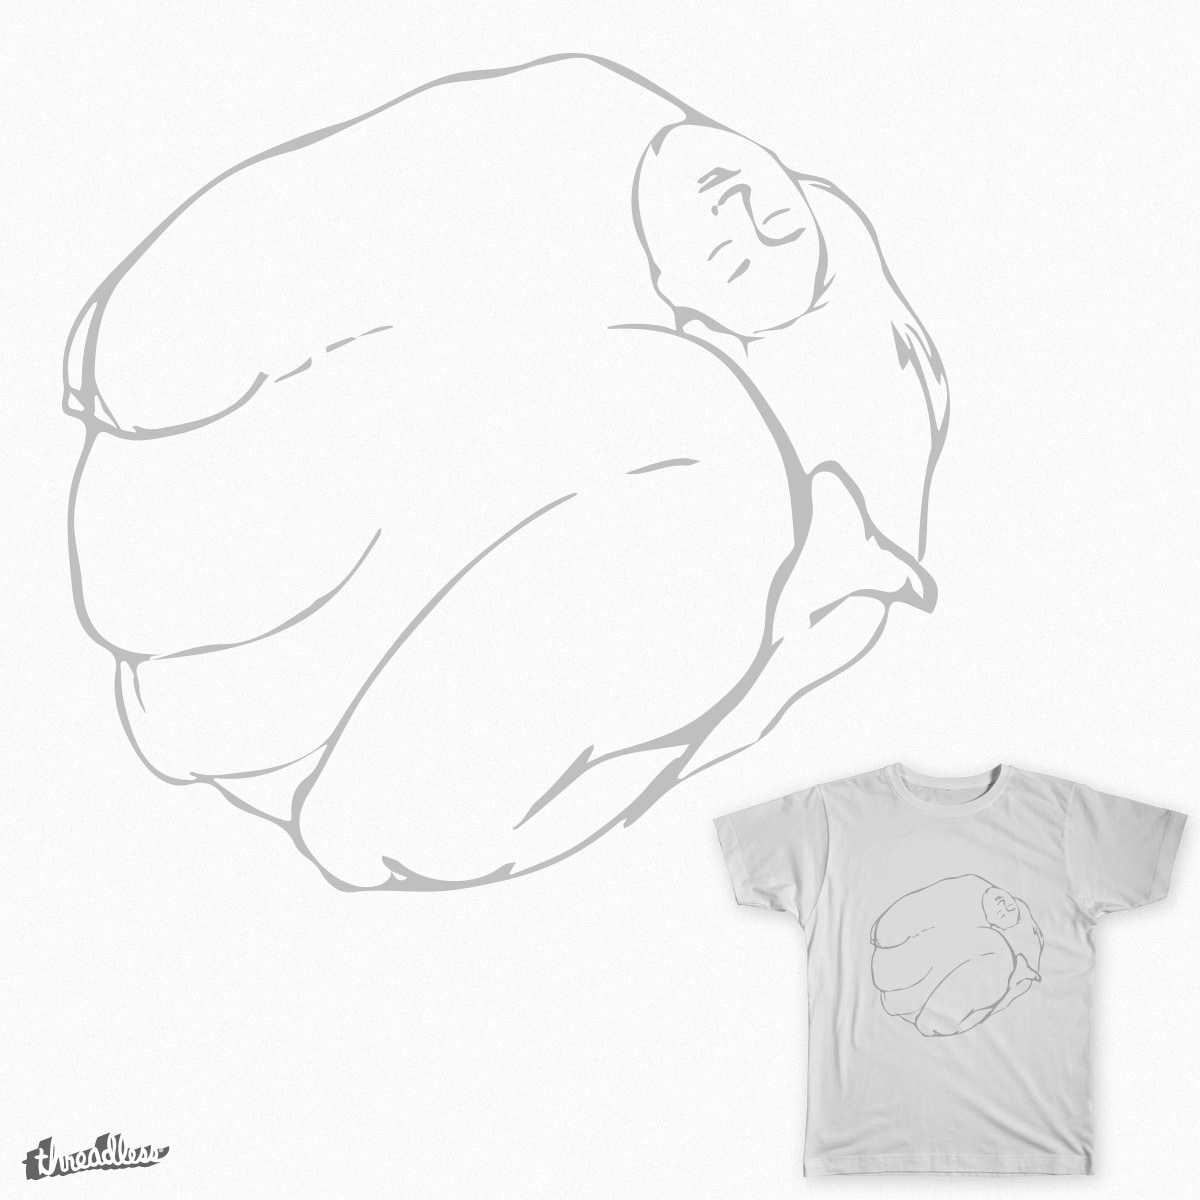 Nude in circle by Blackhill on Threadless